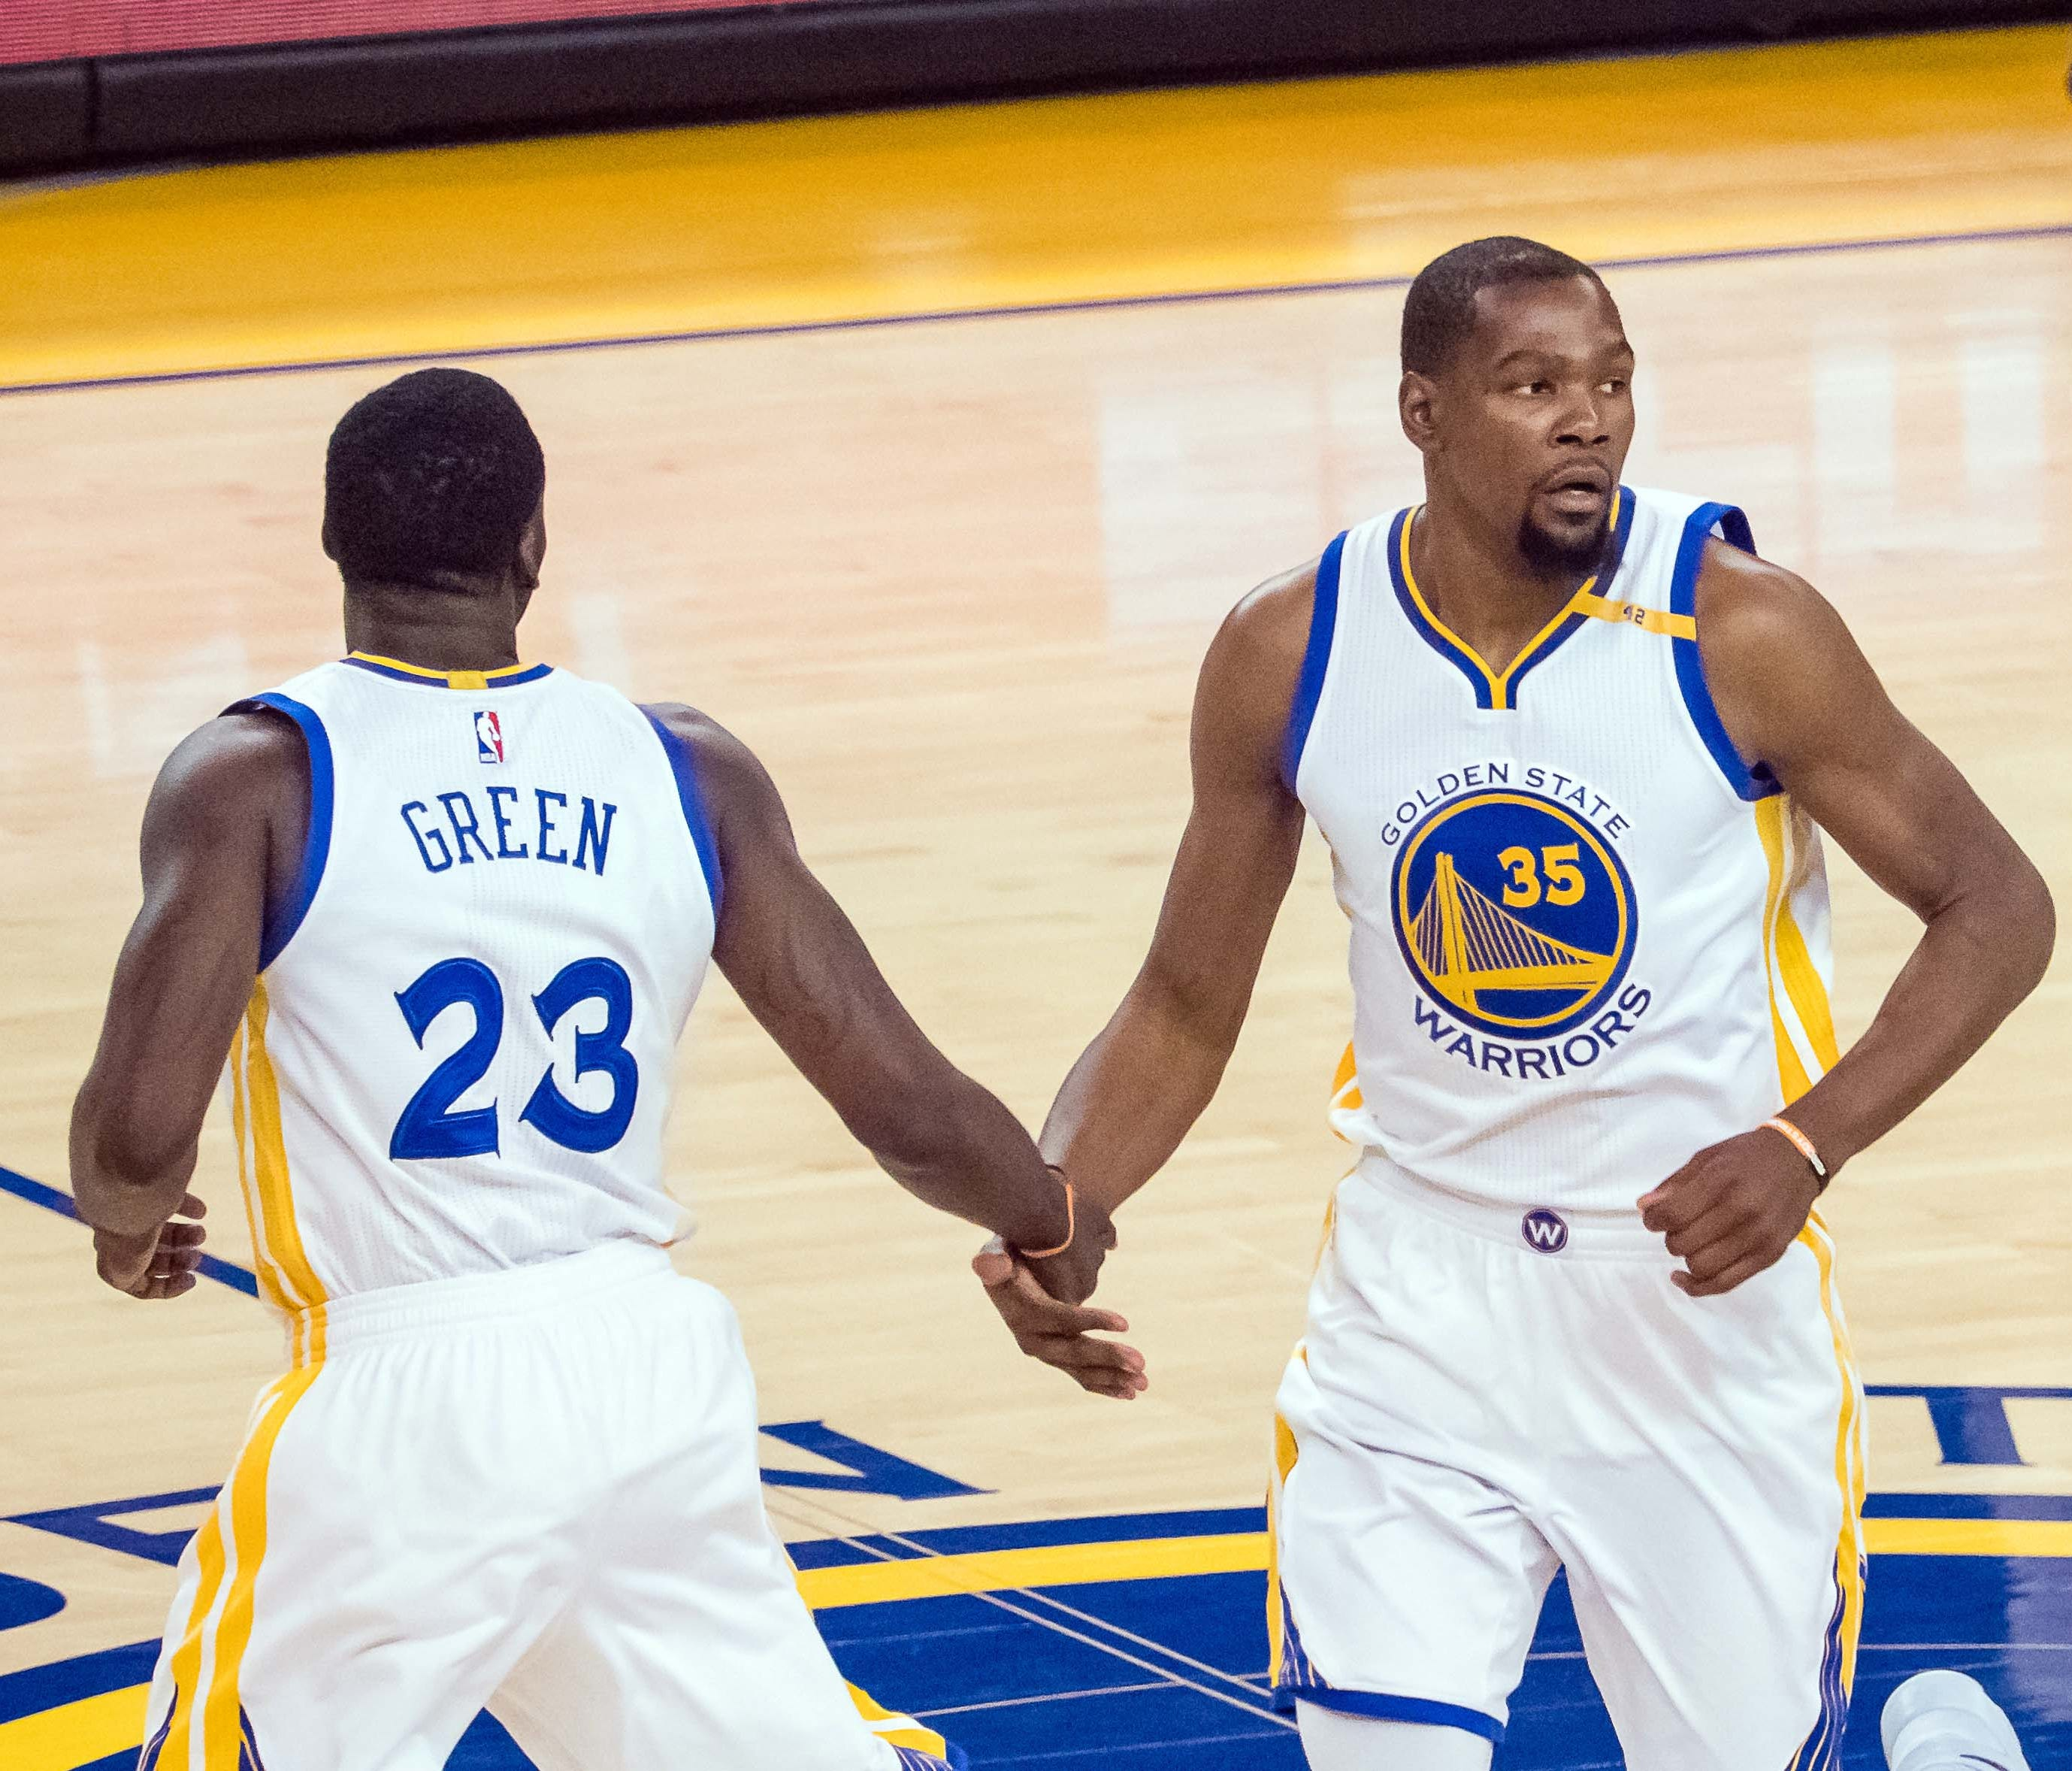 The Golden State Warriors' Kevin Durant (35) and Draymond Green enjoyed a Game 2 rout of the Spurs.